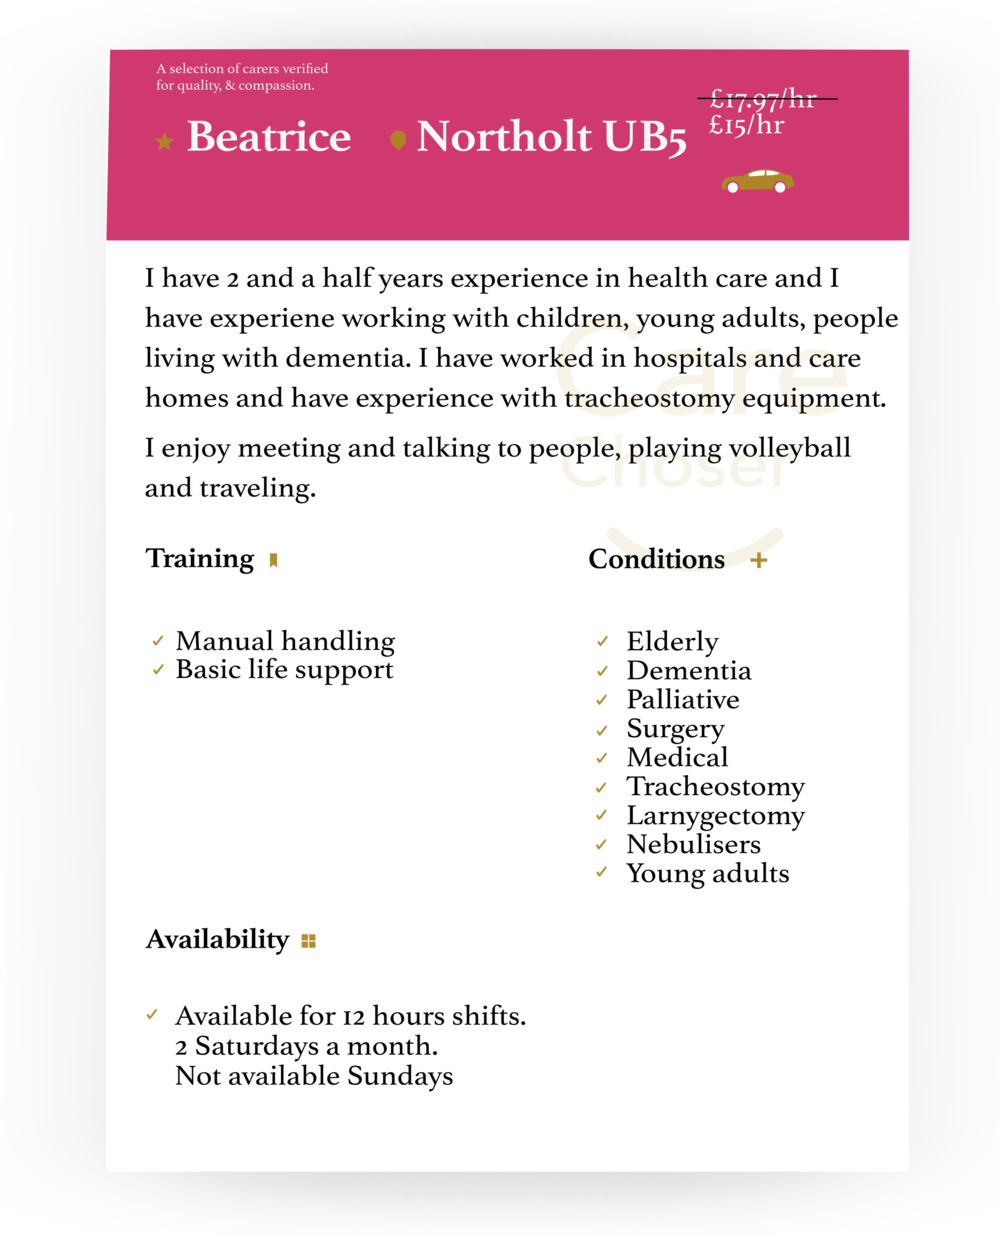 Beatrice - home care in Northolt.png